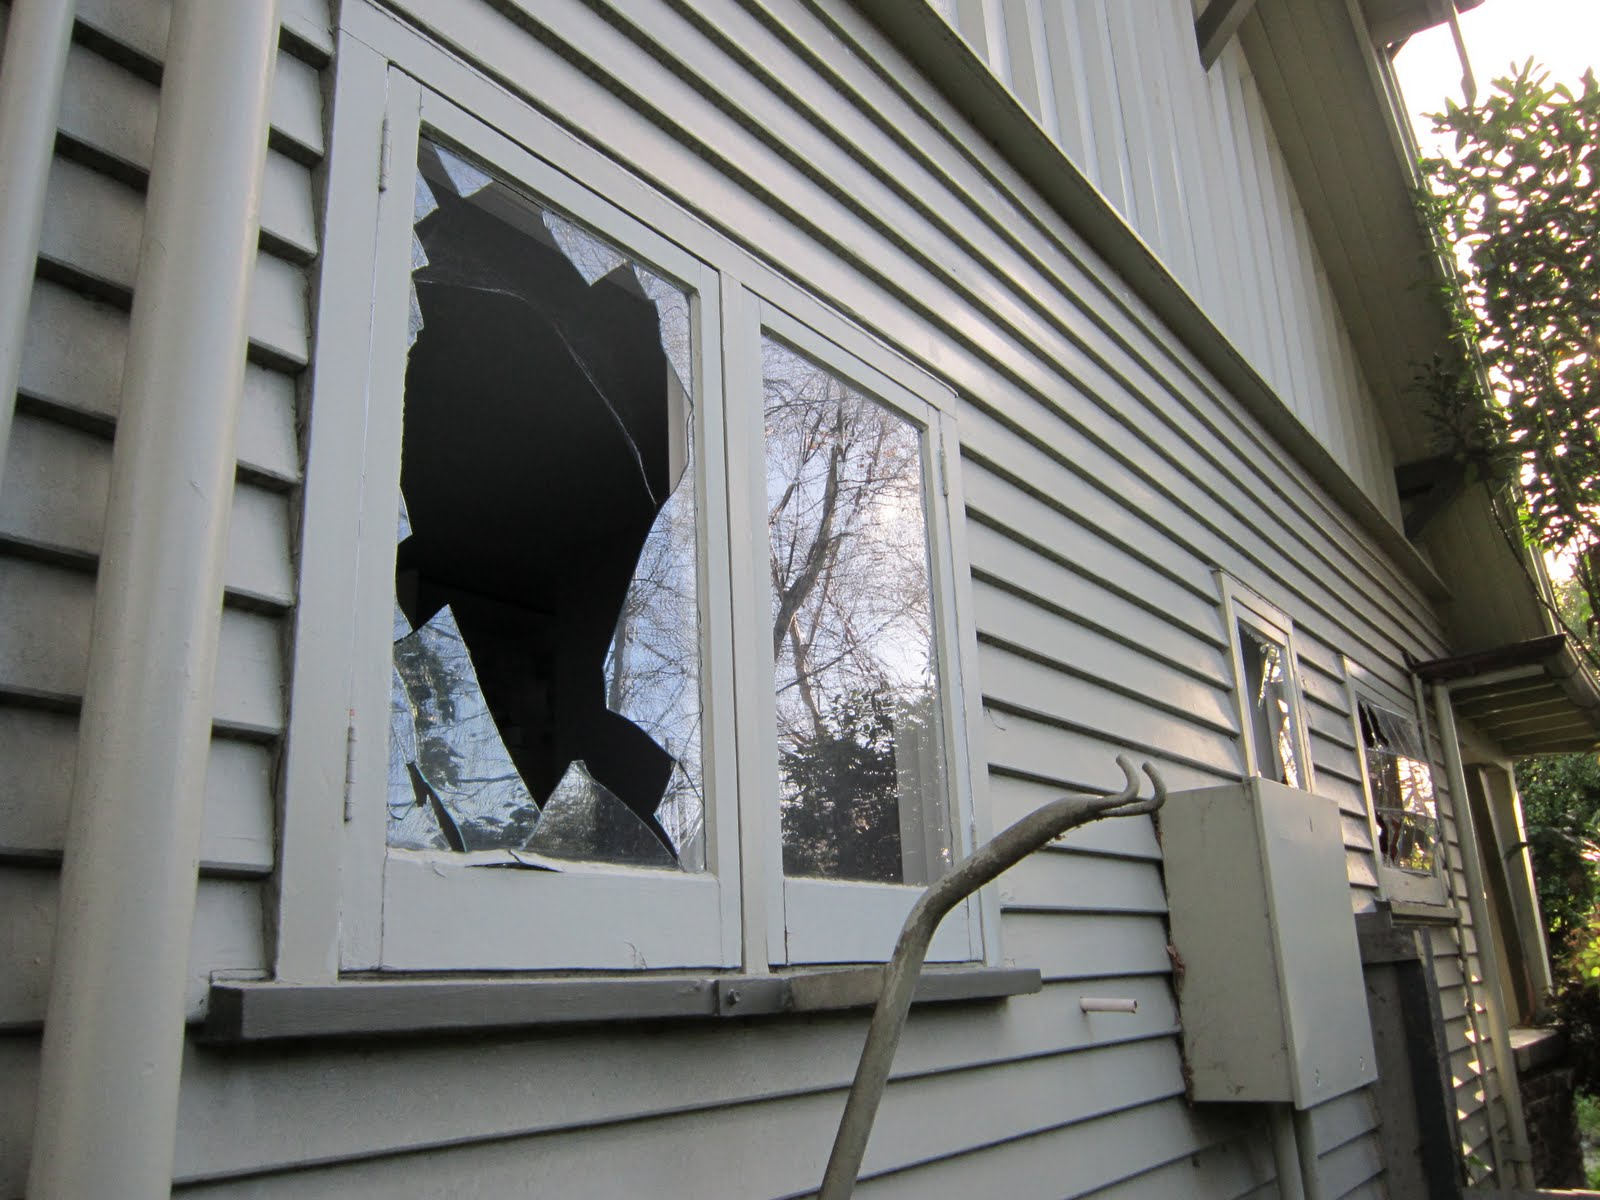 Fha and cracked windows for Home on windows